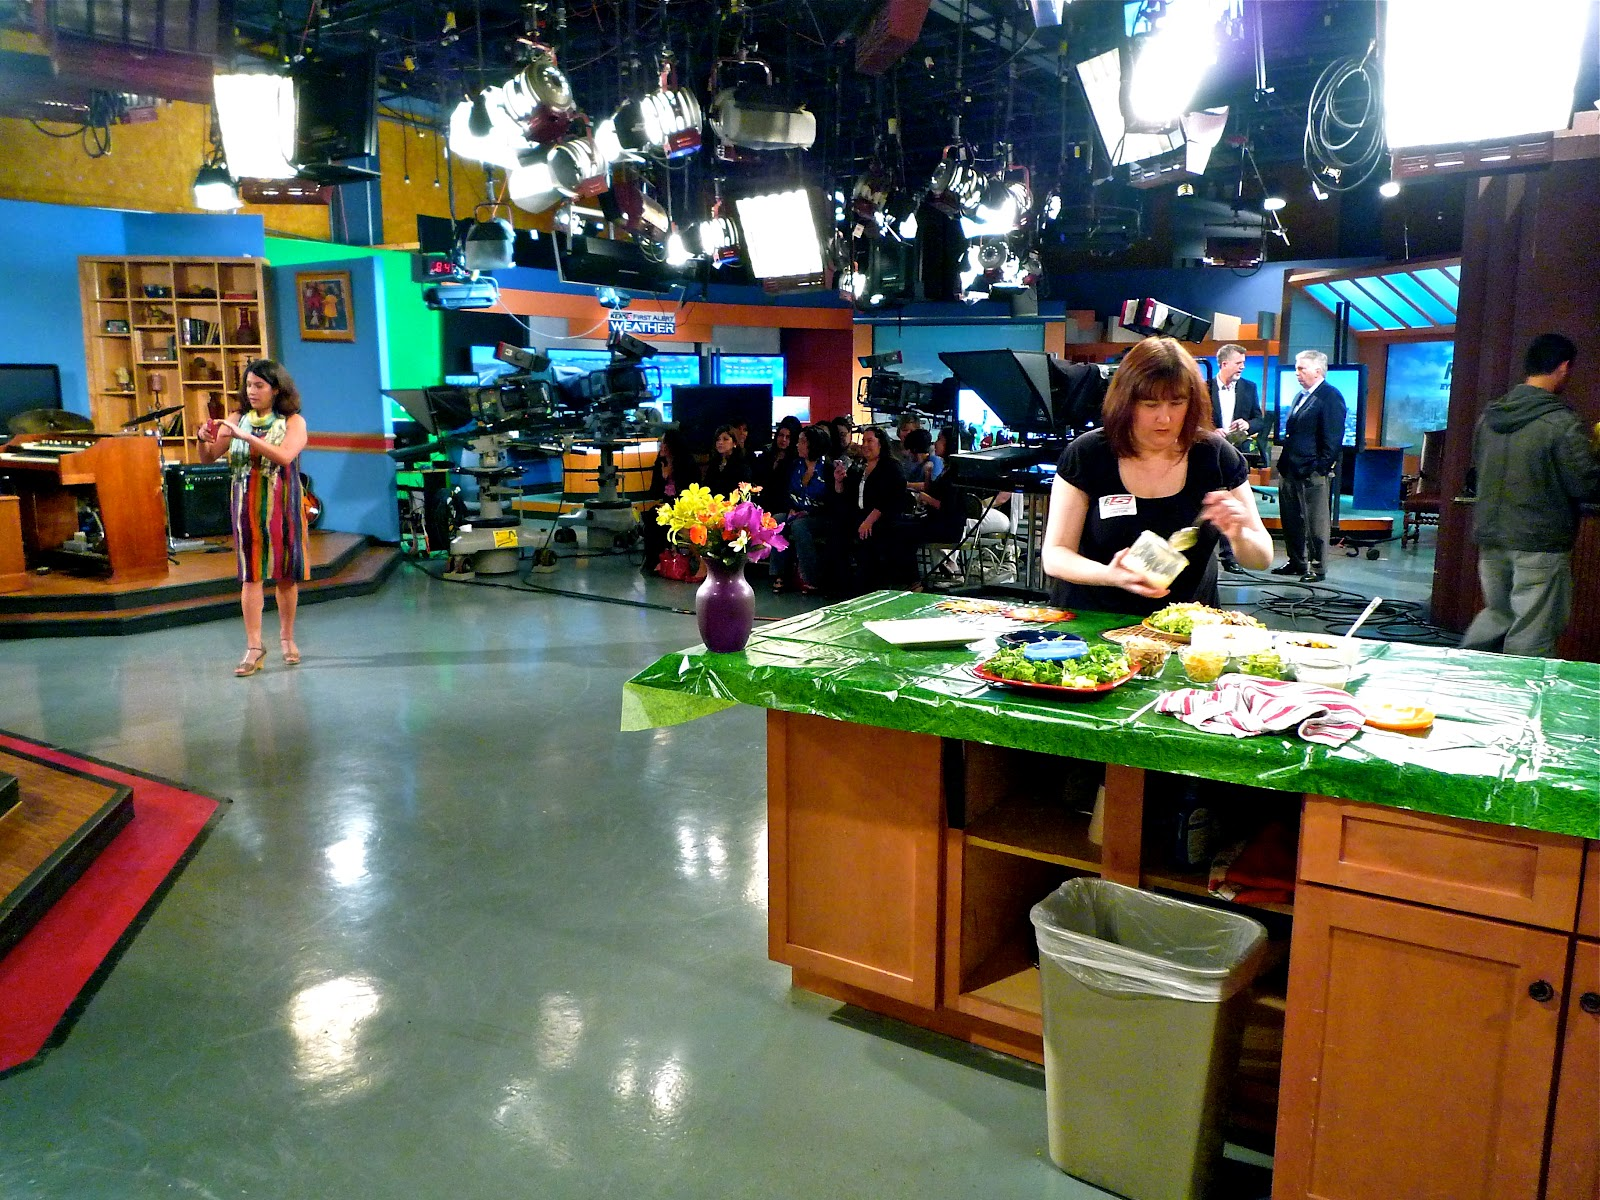 The Kitchen Show the weekend gourmet: behind the scenes of a television cooking